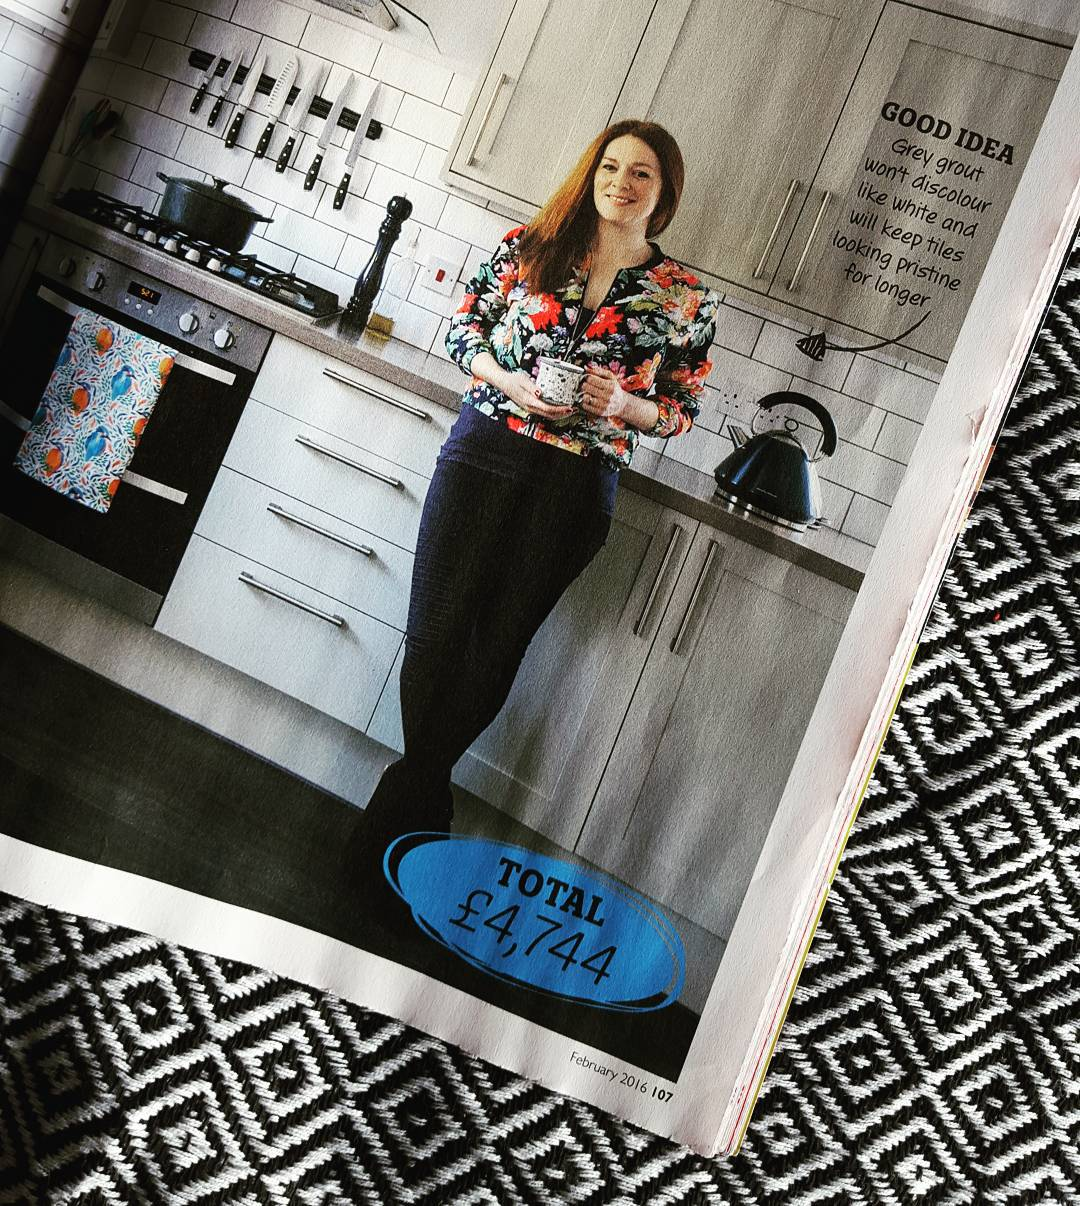 Look who's in the latest issue of HomeStyle magazine!